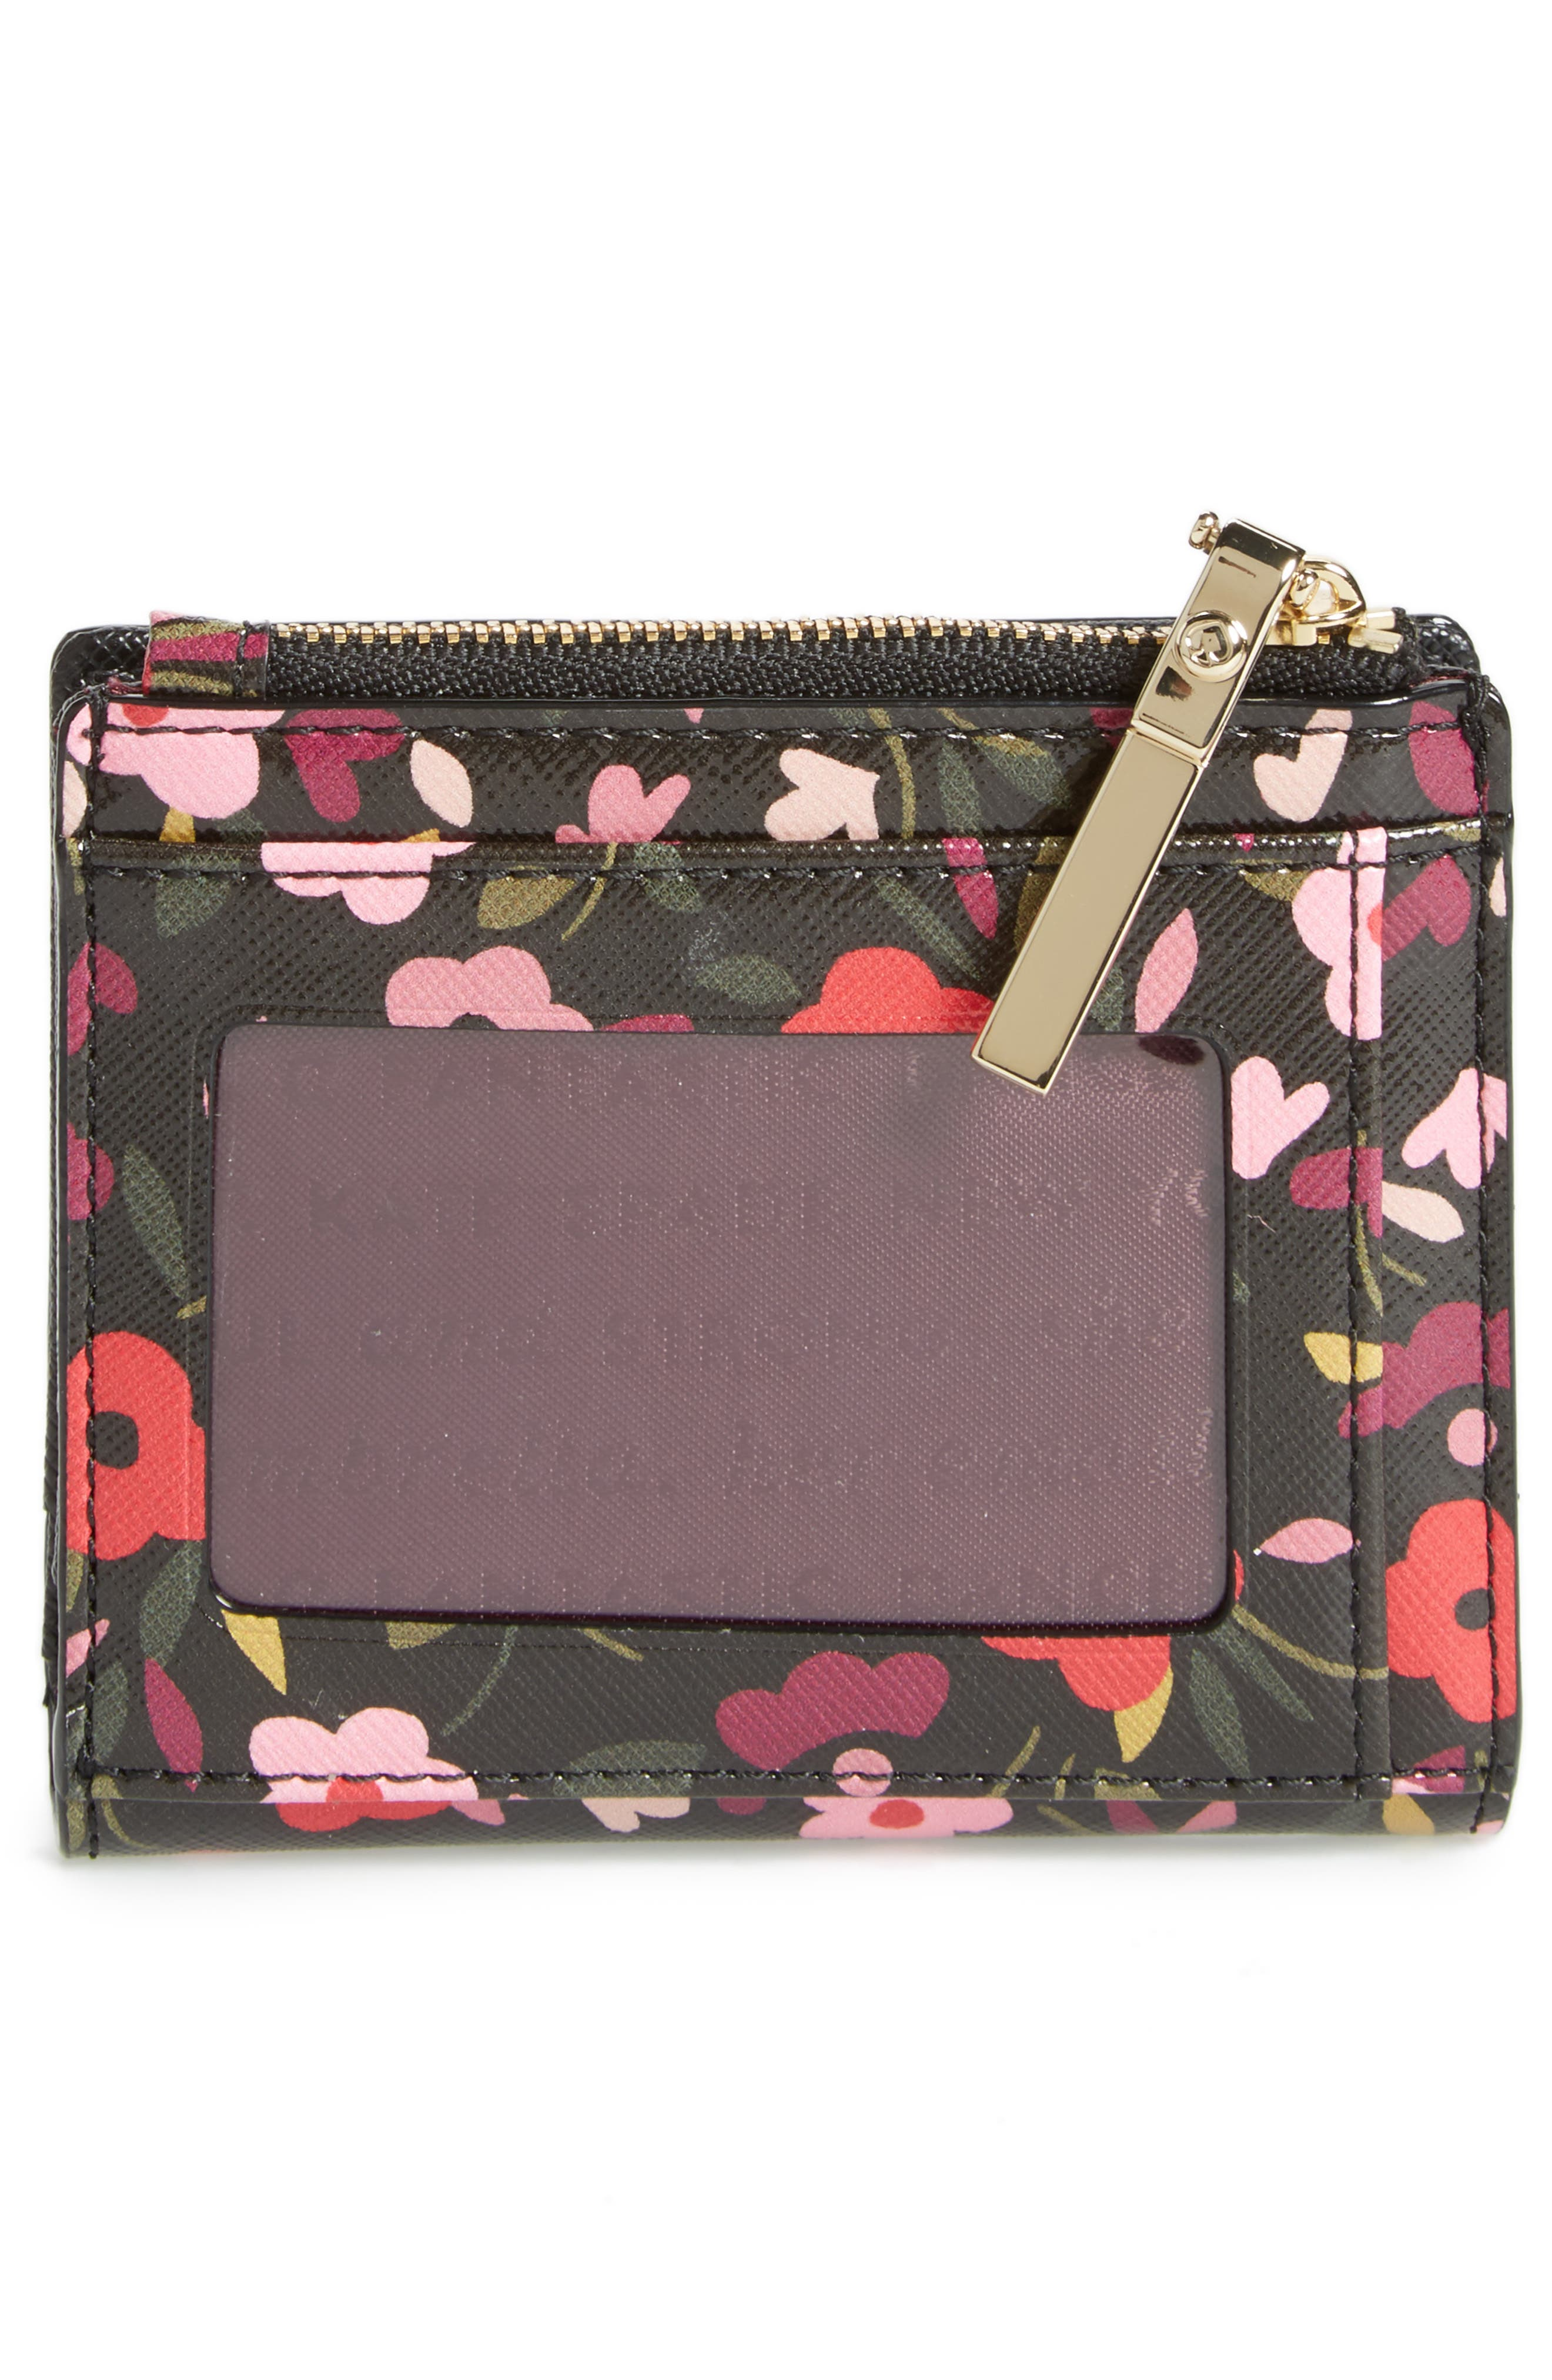 cameron street - adalyn boho floral wallet,                             Alternate thumbnail 4, color,                             001